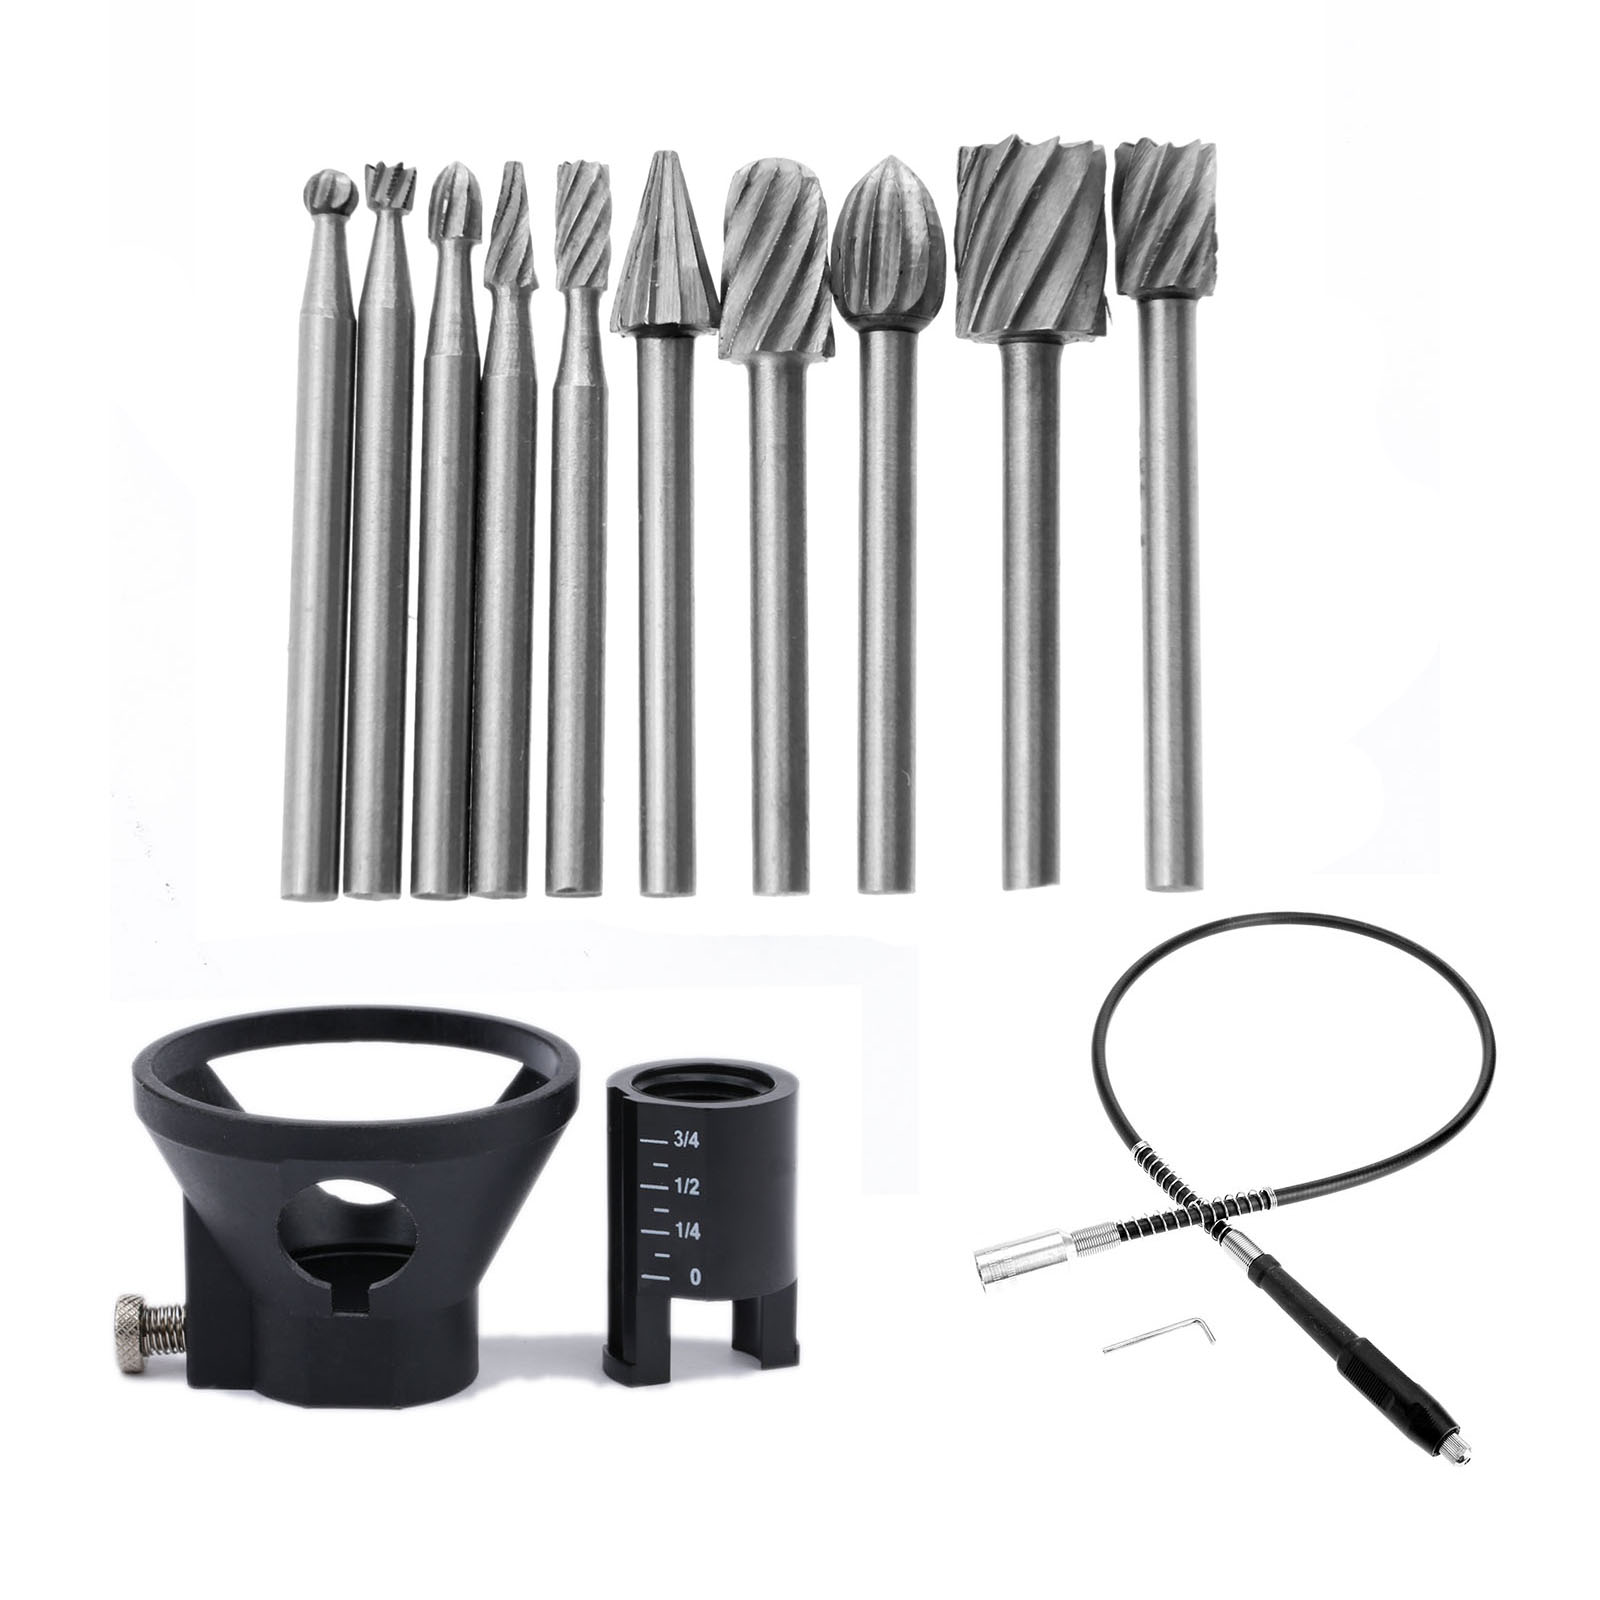 10Pc HSS Routing Router Grinding Bits Burr Dremel Accessories+Drill Dedicated Locator Horn Grinder Rotary Tool+19x2mm Flex Shaft